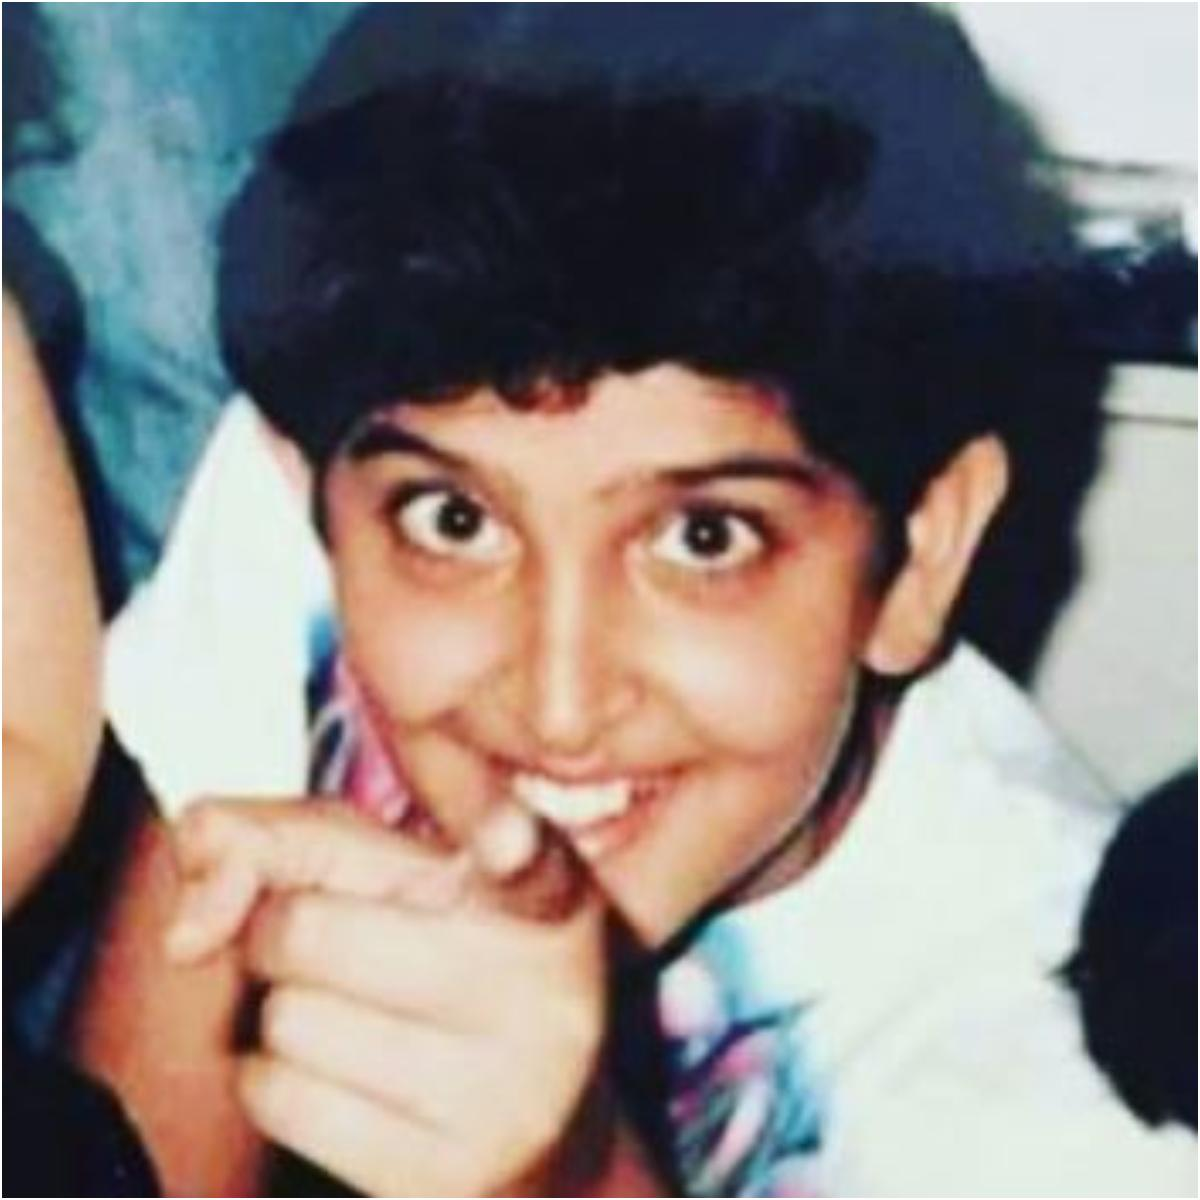 Hrithik Roshan's childhood pictures will make you fall for him again!